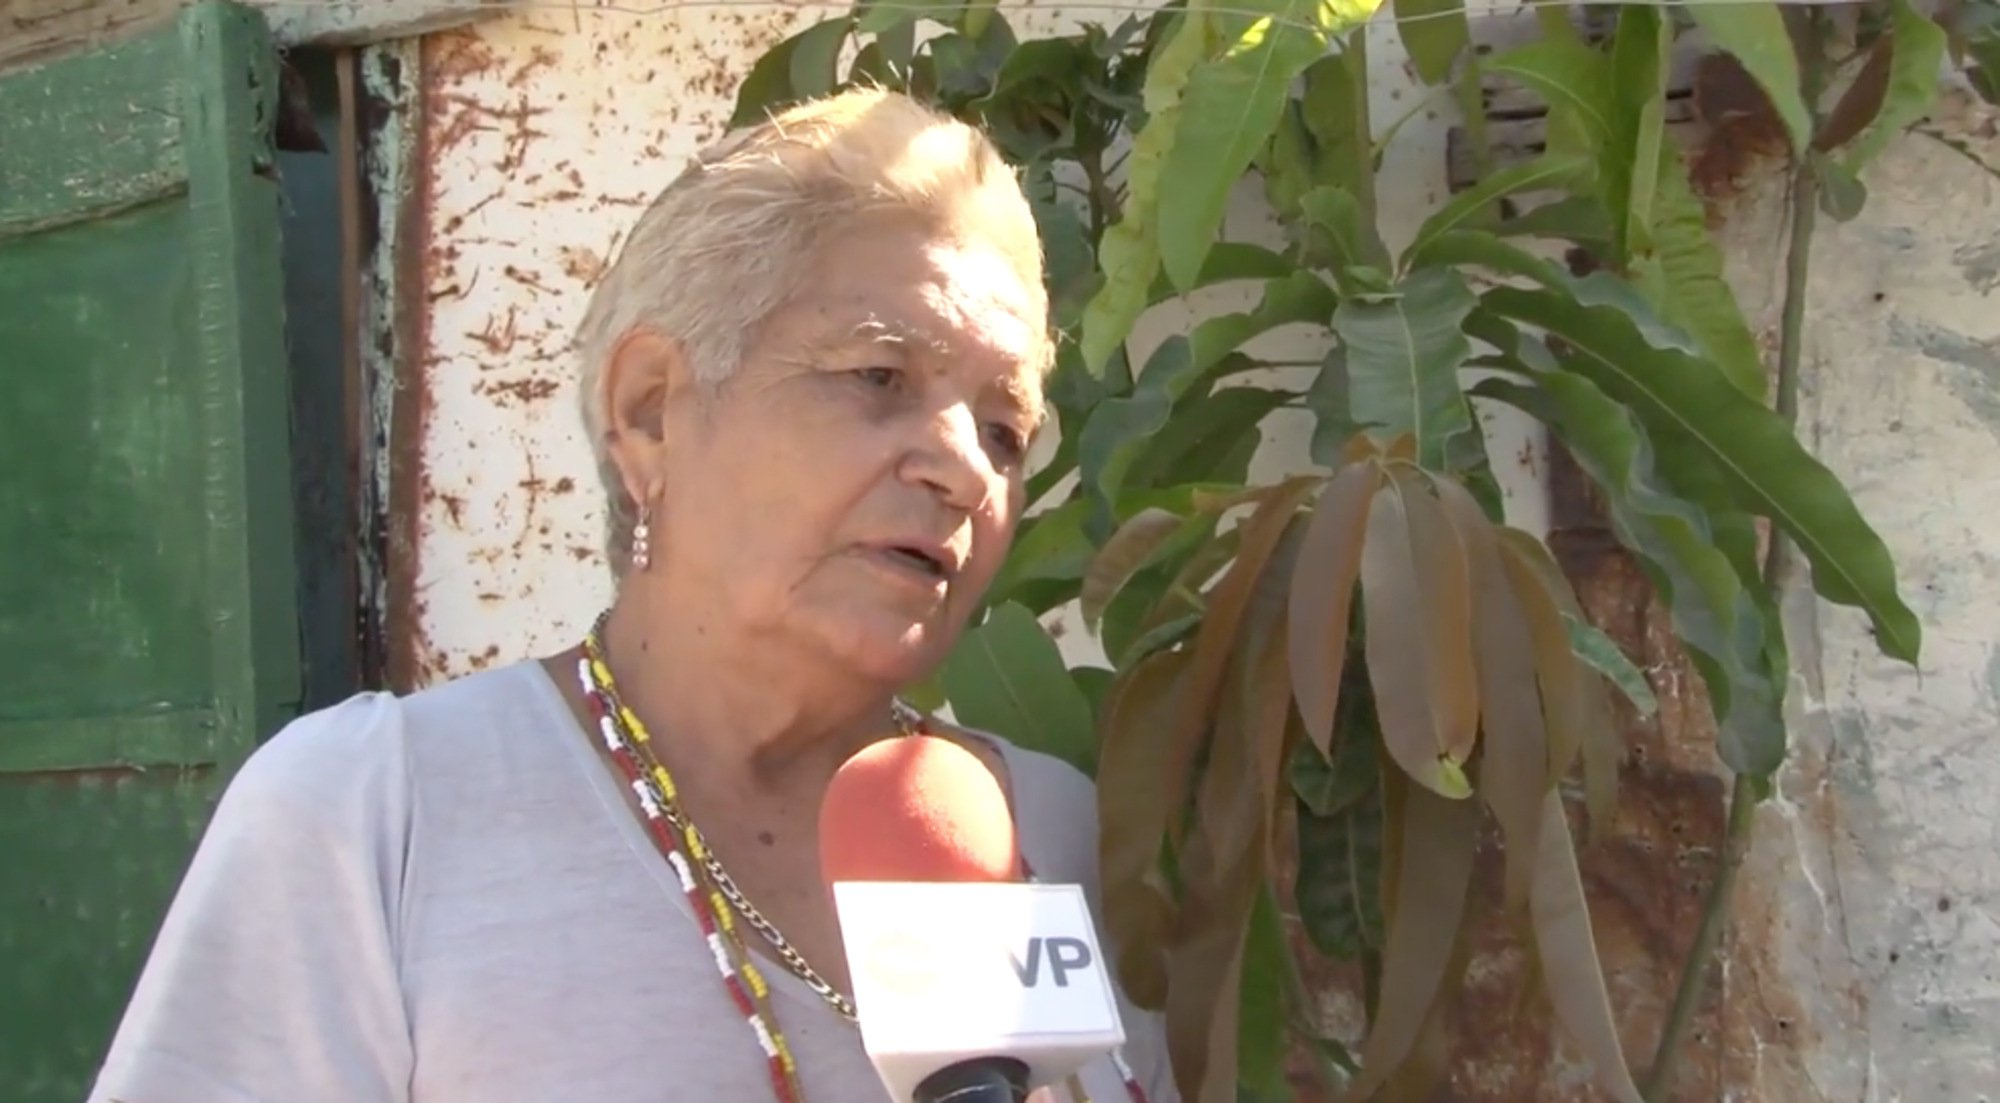 """Pic shows: Maria de la Luz This is the 70-year-old woman reportedly six months pregnant with her eighth child and she will apparently become the oldest new mother in history if she gives birth. The mum-to-be identified as Maria de la Luz, lives in Mazatlan, a city in the Mexican state of Sinaloa, and if the baby girl is born it will make her four years older than the current record holder. Maria del Carmen Bousada de Lara is the oldest verified mother in the world. She was aged 66 years and 358 days when she gave birth to twin baby boys, Christian and Pau, in December 2006. They were delivered prematurely by caesarean section and weighed 3.5 lbs (1.6 kilogrammes) each. Maria de la Luz who is now set to become the world's oldest mother has shown the media ultrasound scans which she says confirm she is six months pregnant with a baby girl. She said: """"They told me it is a girl. Look, you can see her little face."""" The woman, who did not reveal any details of the pregnancy including whether she had had IVF treatment or similar, says she first suspected she was pregnant three months ago. She told reporters: """"My legs hurt and I was vomiting and felt dizzy. Now they have done around 10 ultrasounds in a private clinic and in the (public) social security hospital. The doctors could not believe it."""" Omkari Panwar from the Indian state of Uttar Pradesh, gave birth to twins in 2008 but her claim to have been 70 was not provable. Likewise there were also other women that were older when they had children and claimed to be of a similar age but again none of the ages have been verified. Maria told reporters that some of her children were not happy with the news that she was pregnant, saying they told her she was too old for """"those things"""". She has an appointment with a gynaecologist on 18th July and she says she is expecting to have a caesarean-delivery because of her age. Bousada de Lara admitted that she had lied to physicians about her age when seeking in vitro fertili"""